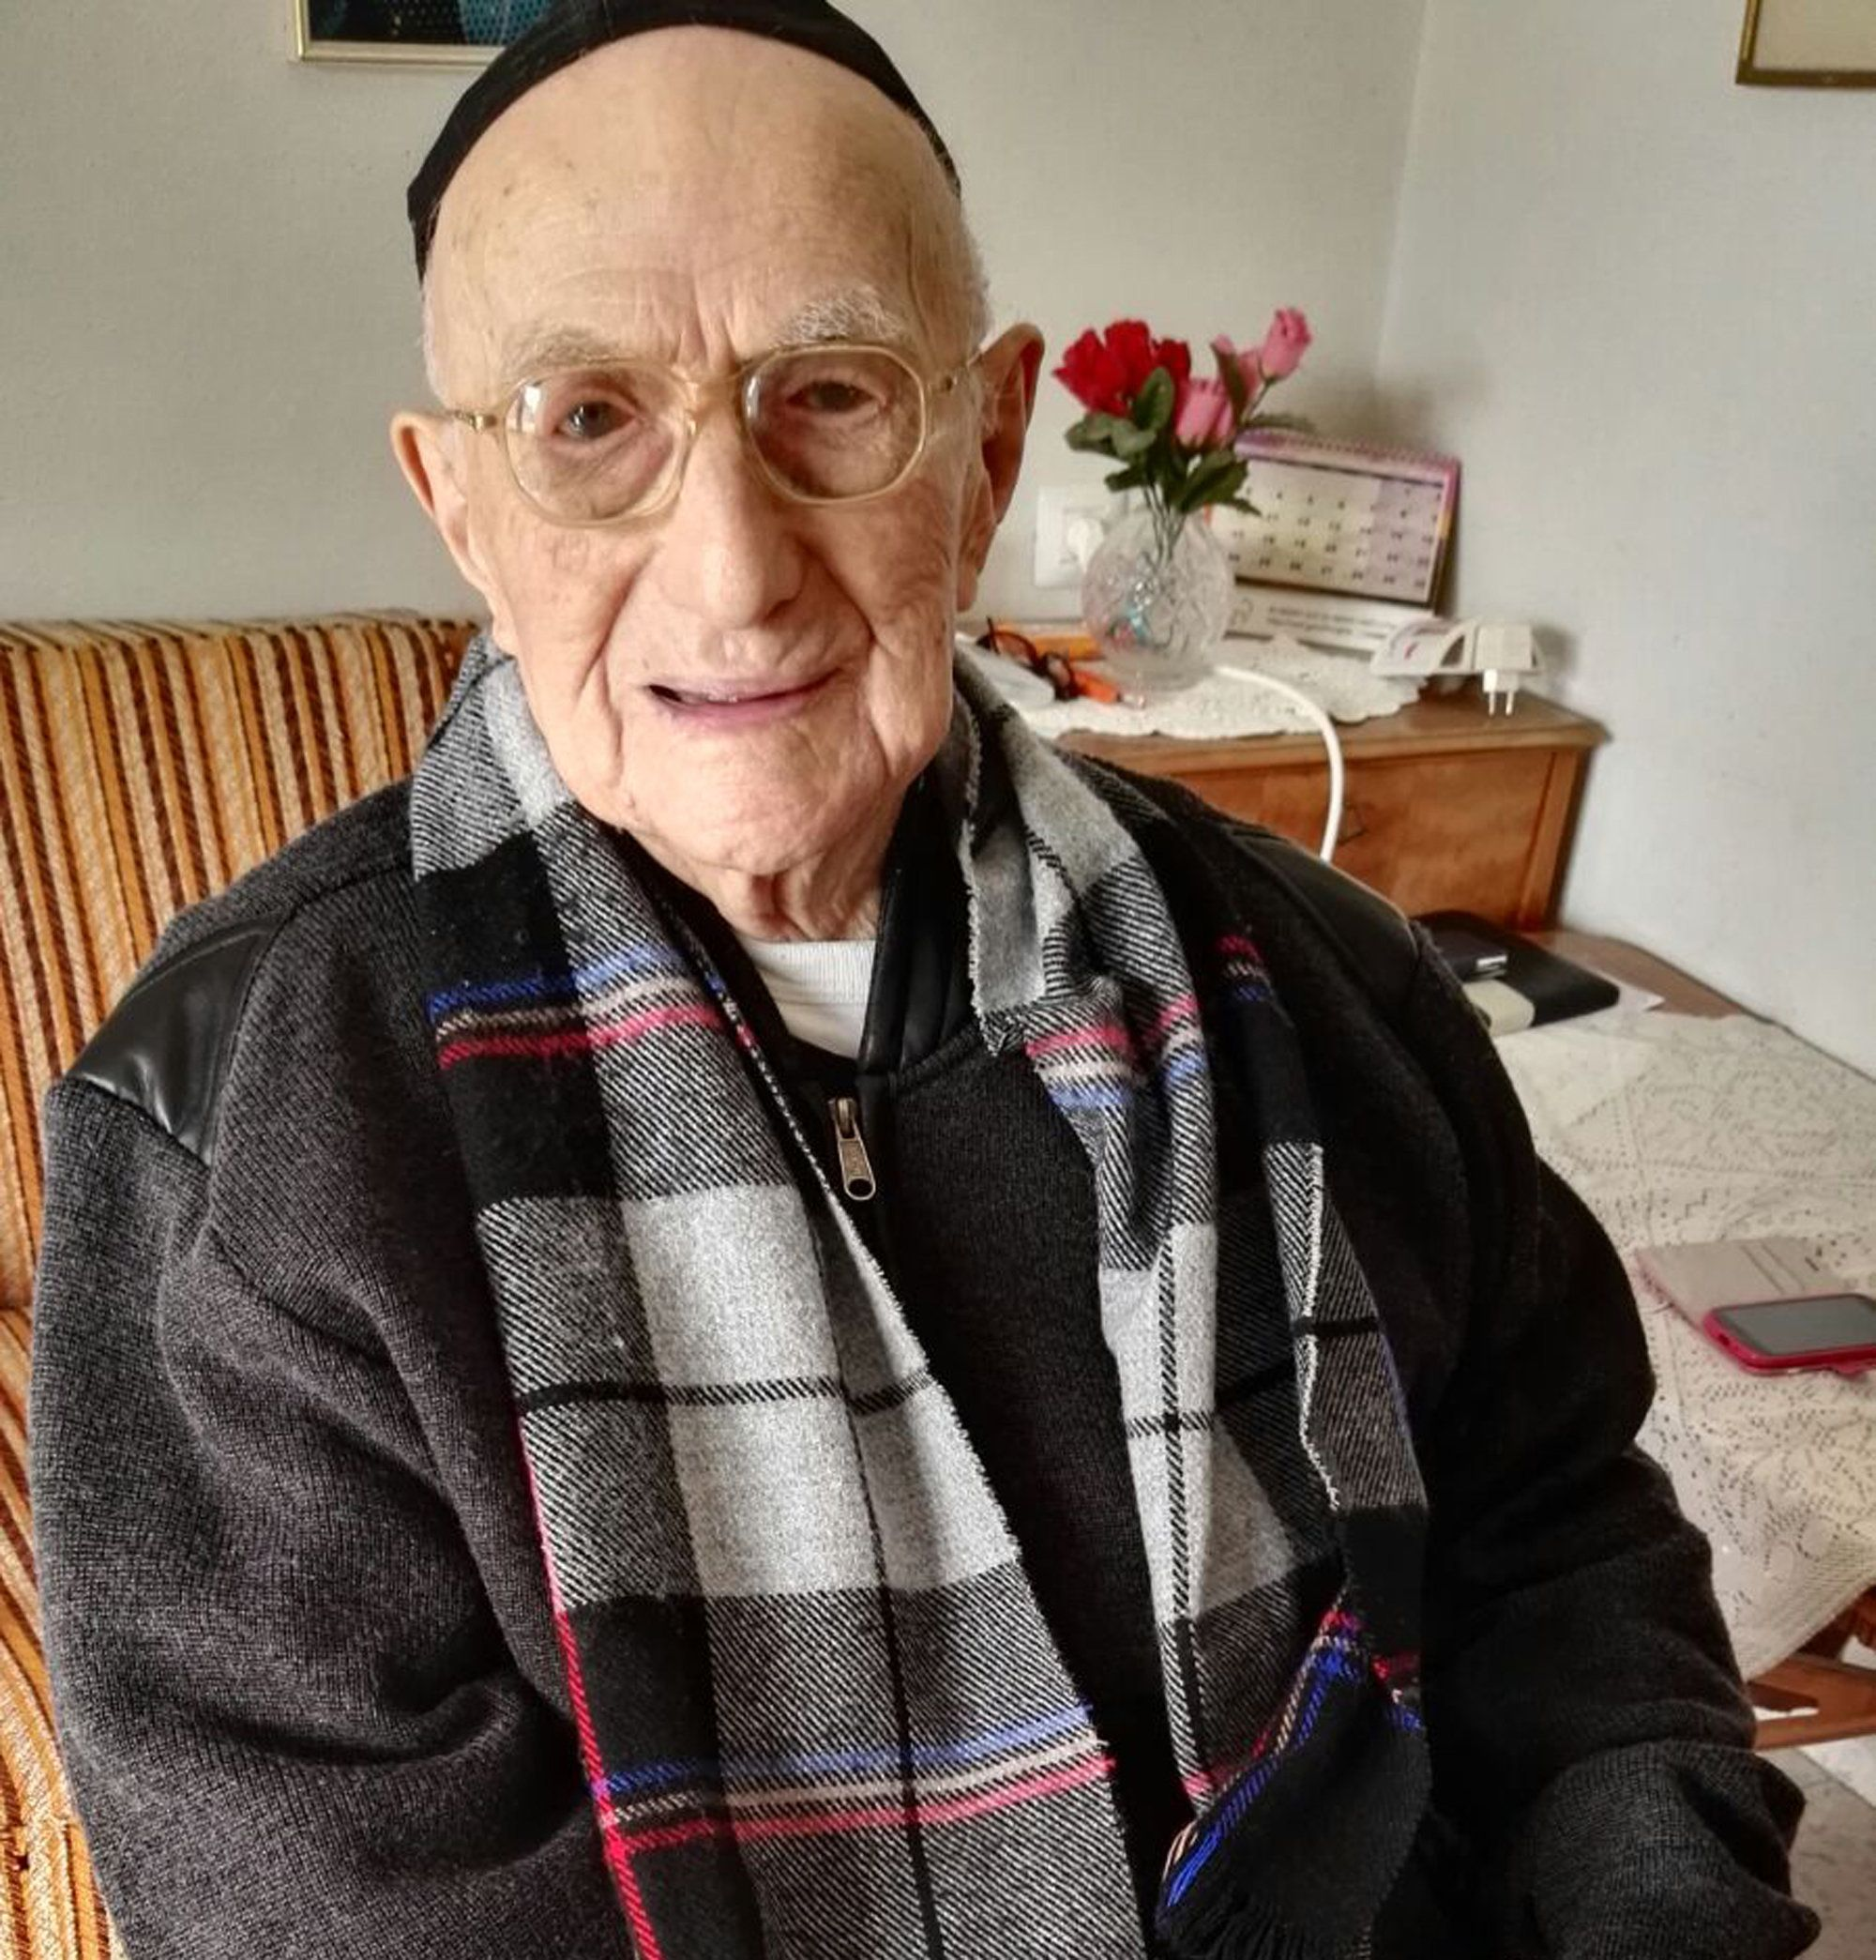 A picture taken on January 21, 2016, shows Yisrael Kristal sitting in his home in the Israeli city of Haifa. Yisrael, an Israeli Holocaust survivor, may be the world's oldest man at 112, Guinness World Records said, providing he can find the documents to prove it. His family say he was born in Poland on September 15, 1903, three months before the Wright brothers took the first aeroplane flight.  / AFP / SHULA KOPERSHTOUK        (Photo credit should read SHULA KOPERSHTOUK/AFP/Getty Images)